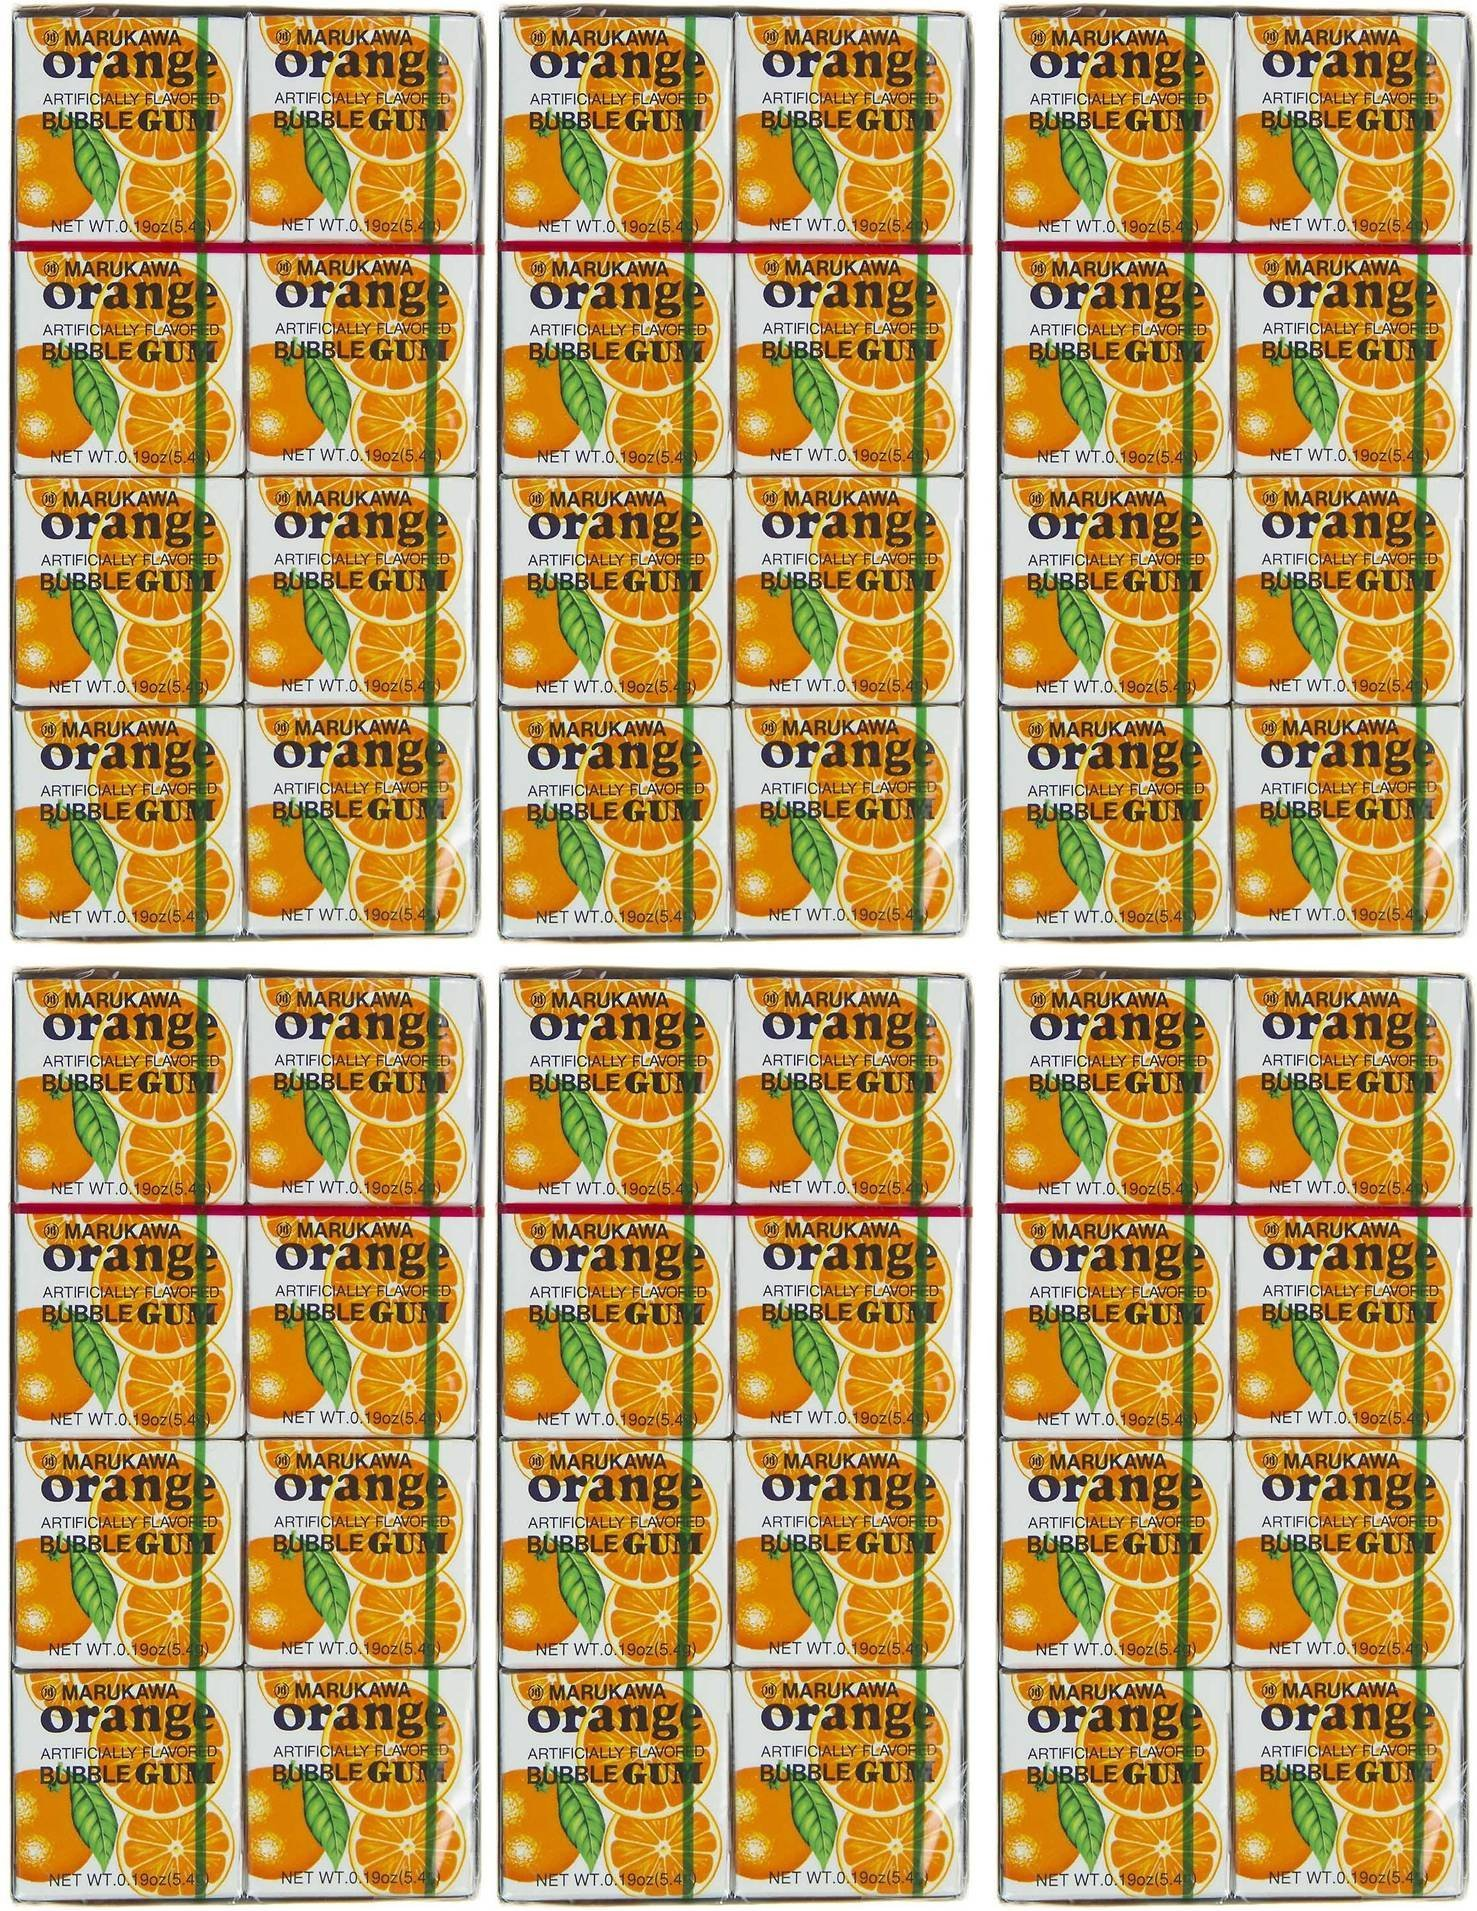 Authentic Japanese Marukawa Orange Flavored Fusen Gum 48 Packs